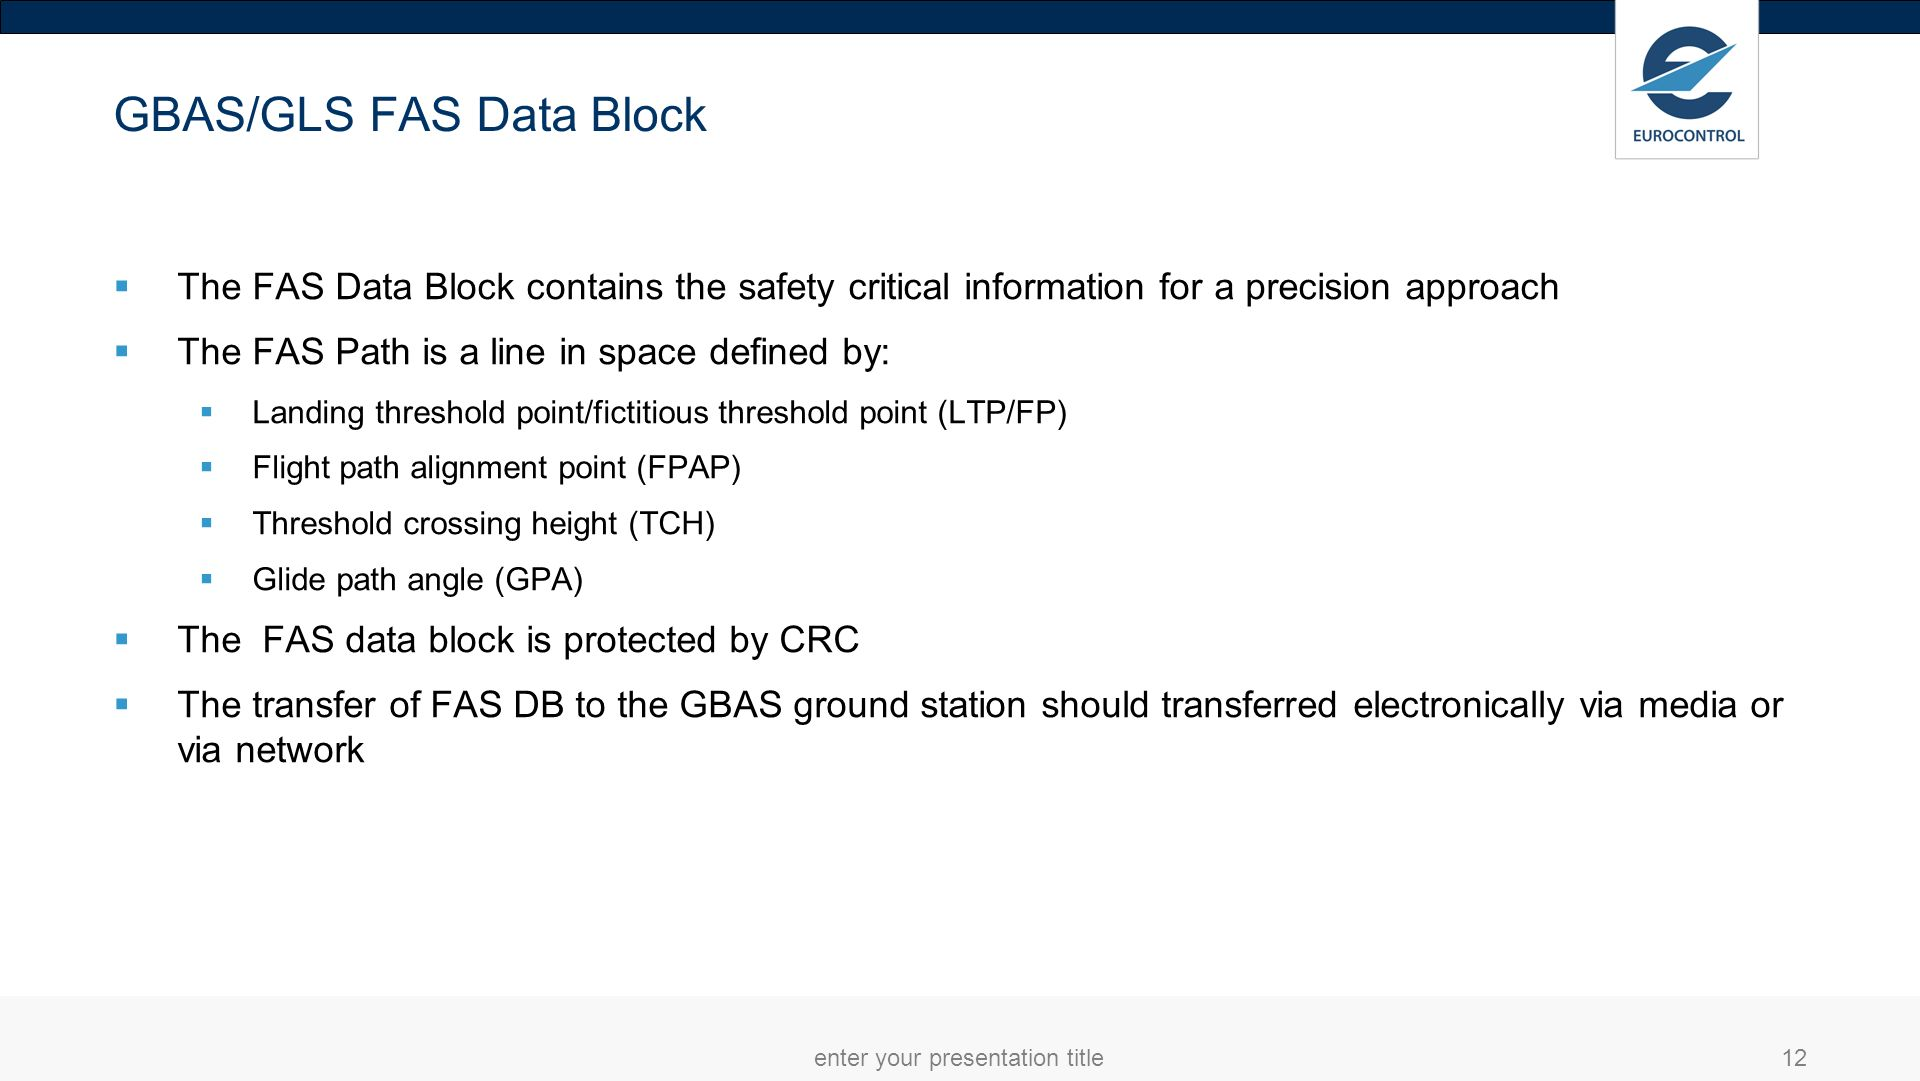 GBAS/GLS FAS Data Block